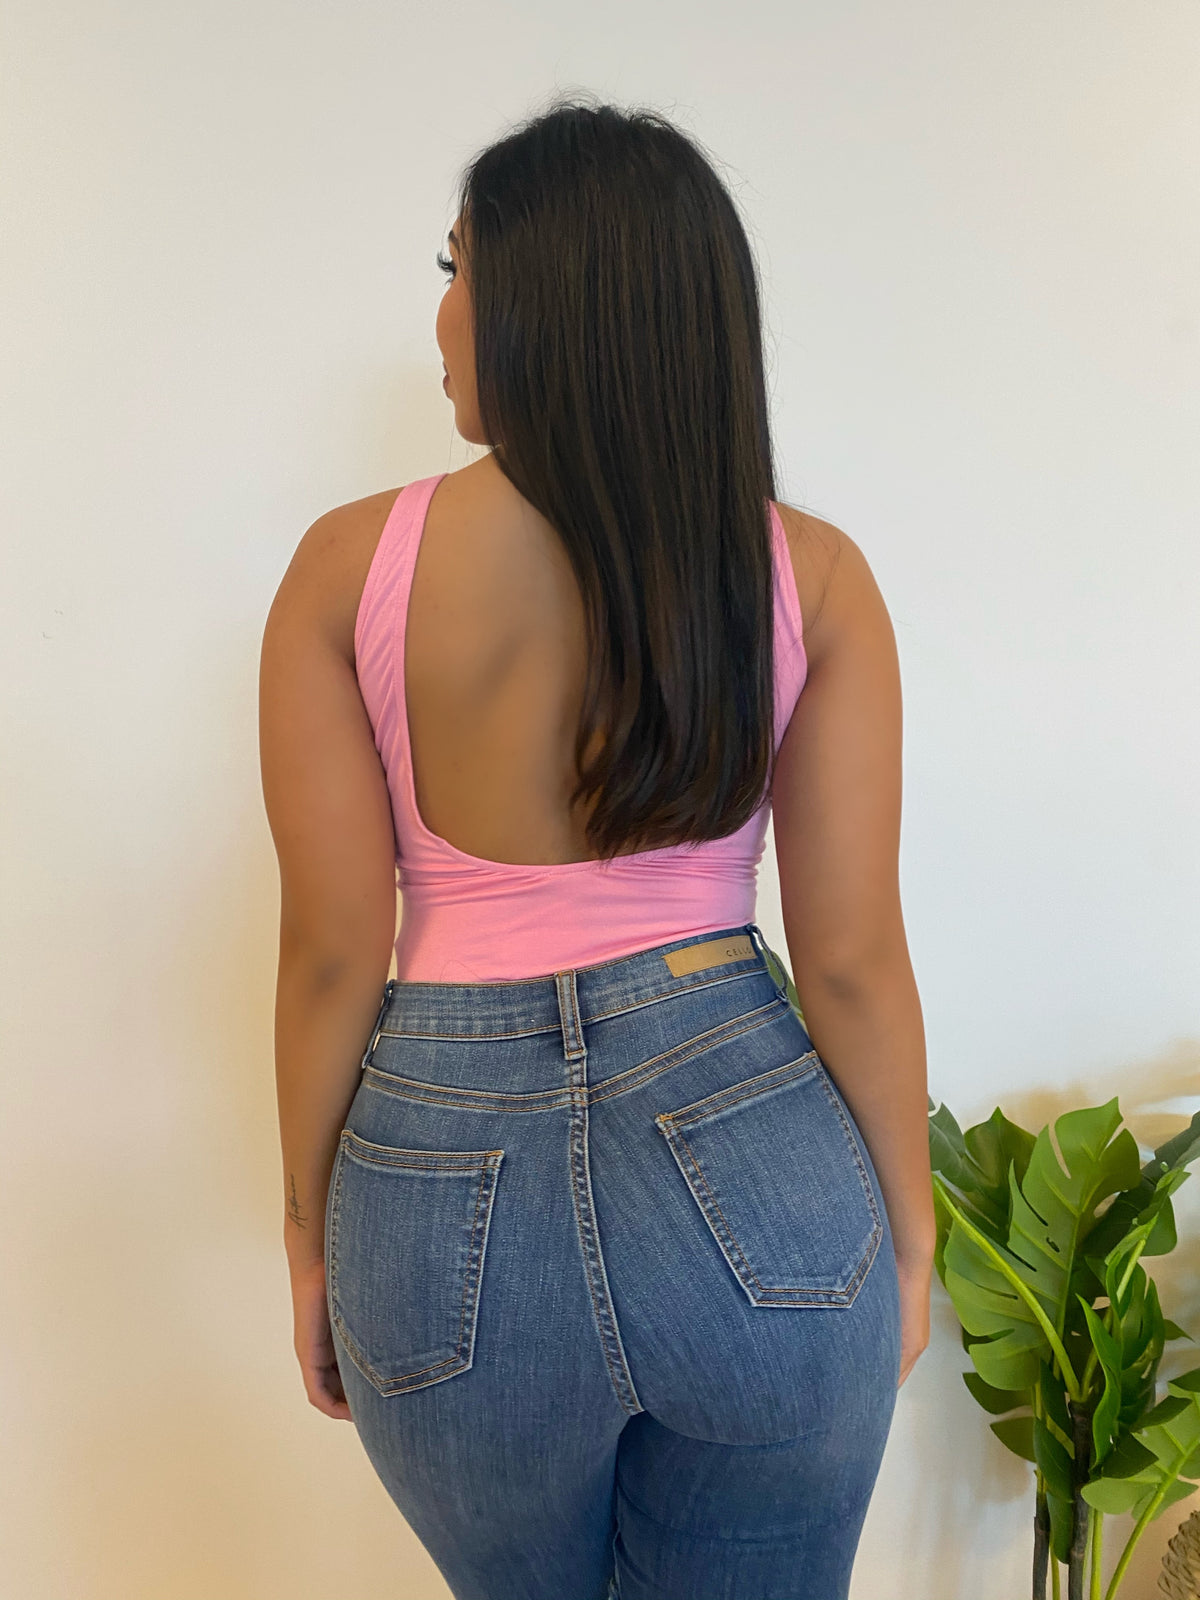 FITTED BODYSUIT, MID CLEAVAGE SHOWING, OPEN BACK, TWO-FINGER STRAPS, COLOR IS PINK.